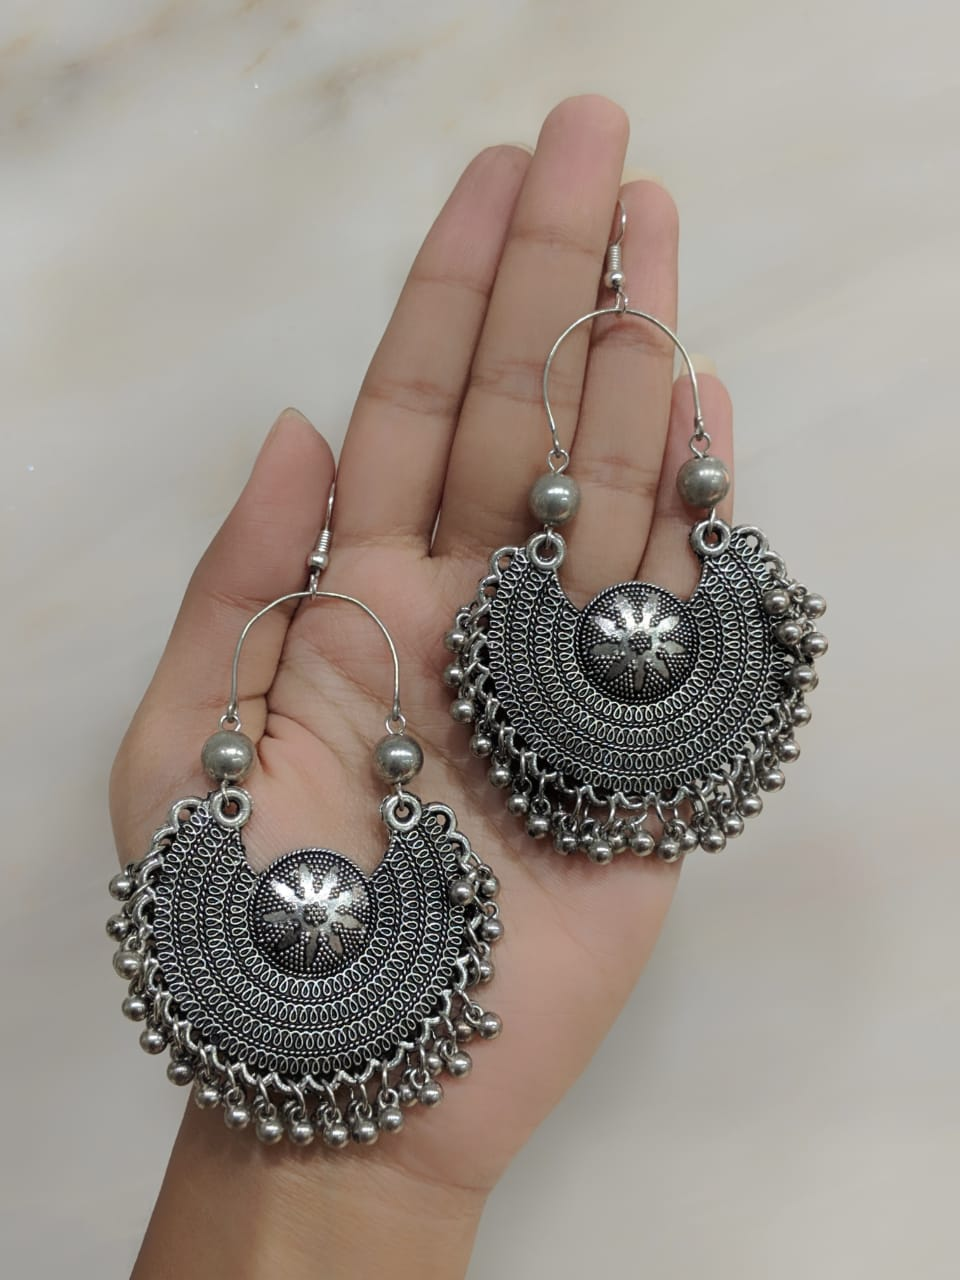 Digital Jhumki Earrings for Women Designer Oxidised Silver Earrings Afghani Tribal Bohemian Oxidised German Silver Stylish Party Wear Dangle Drop Earrings Jaipuri Tribal ghungroo Antique Jewellery